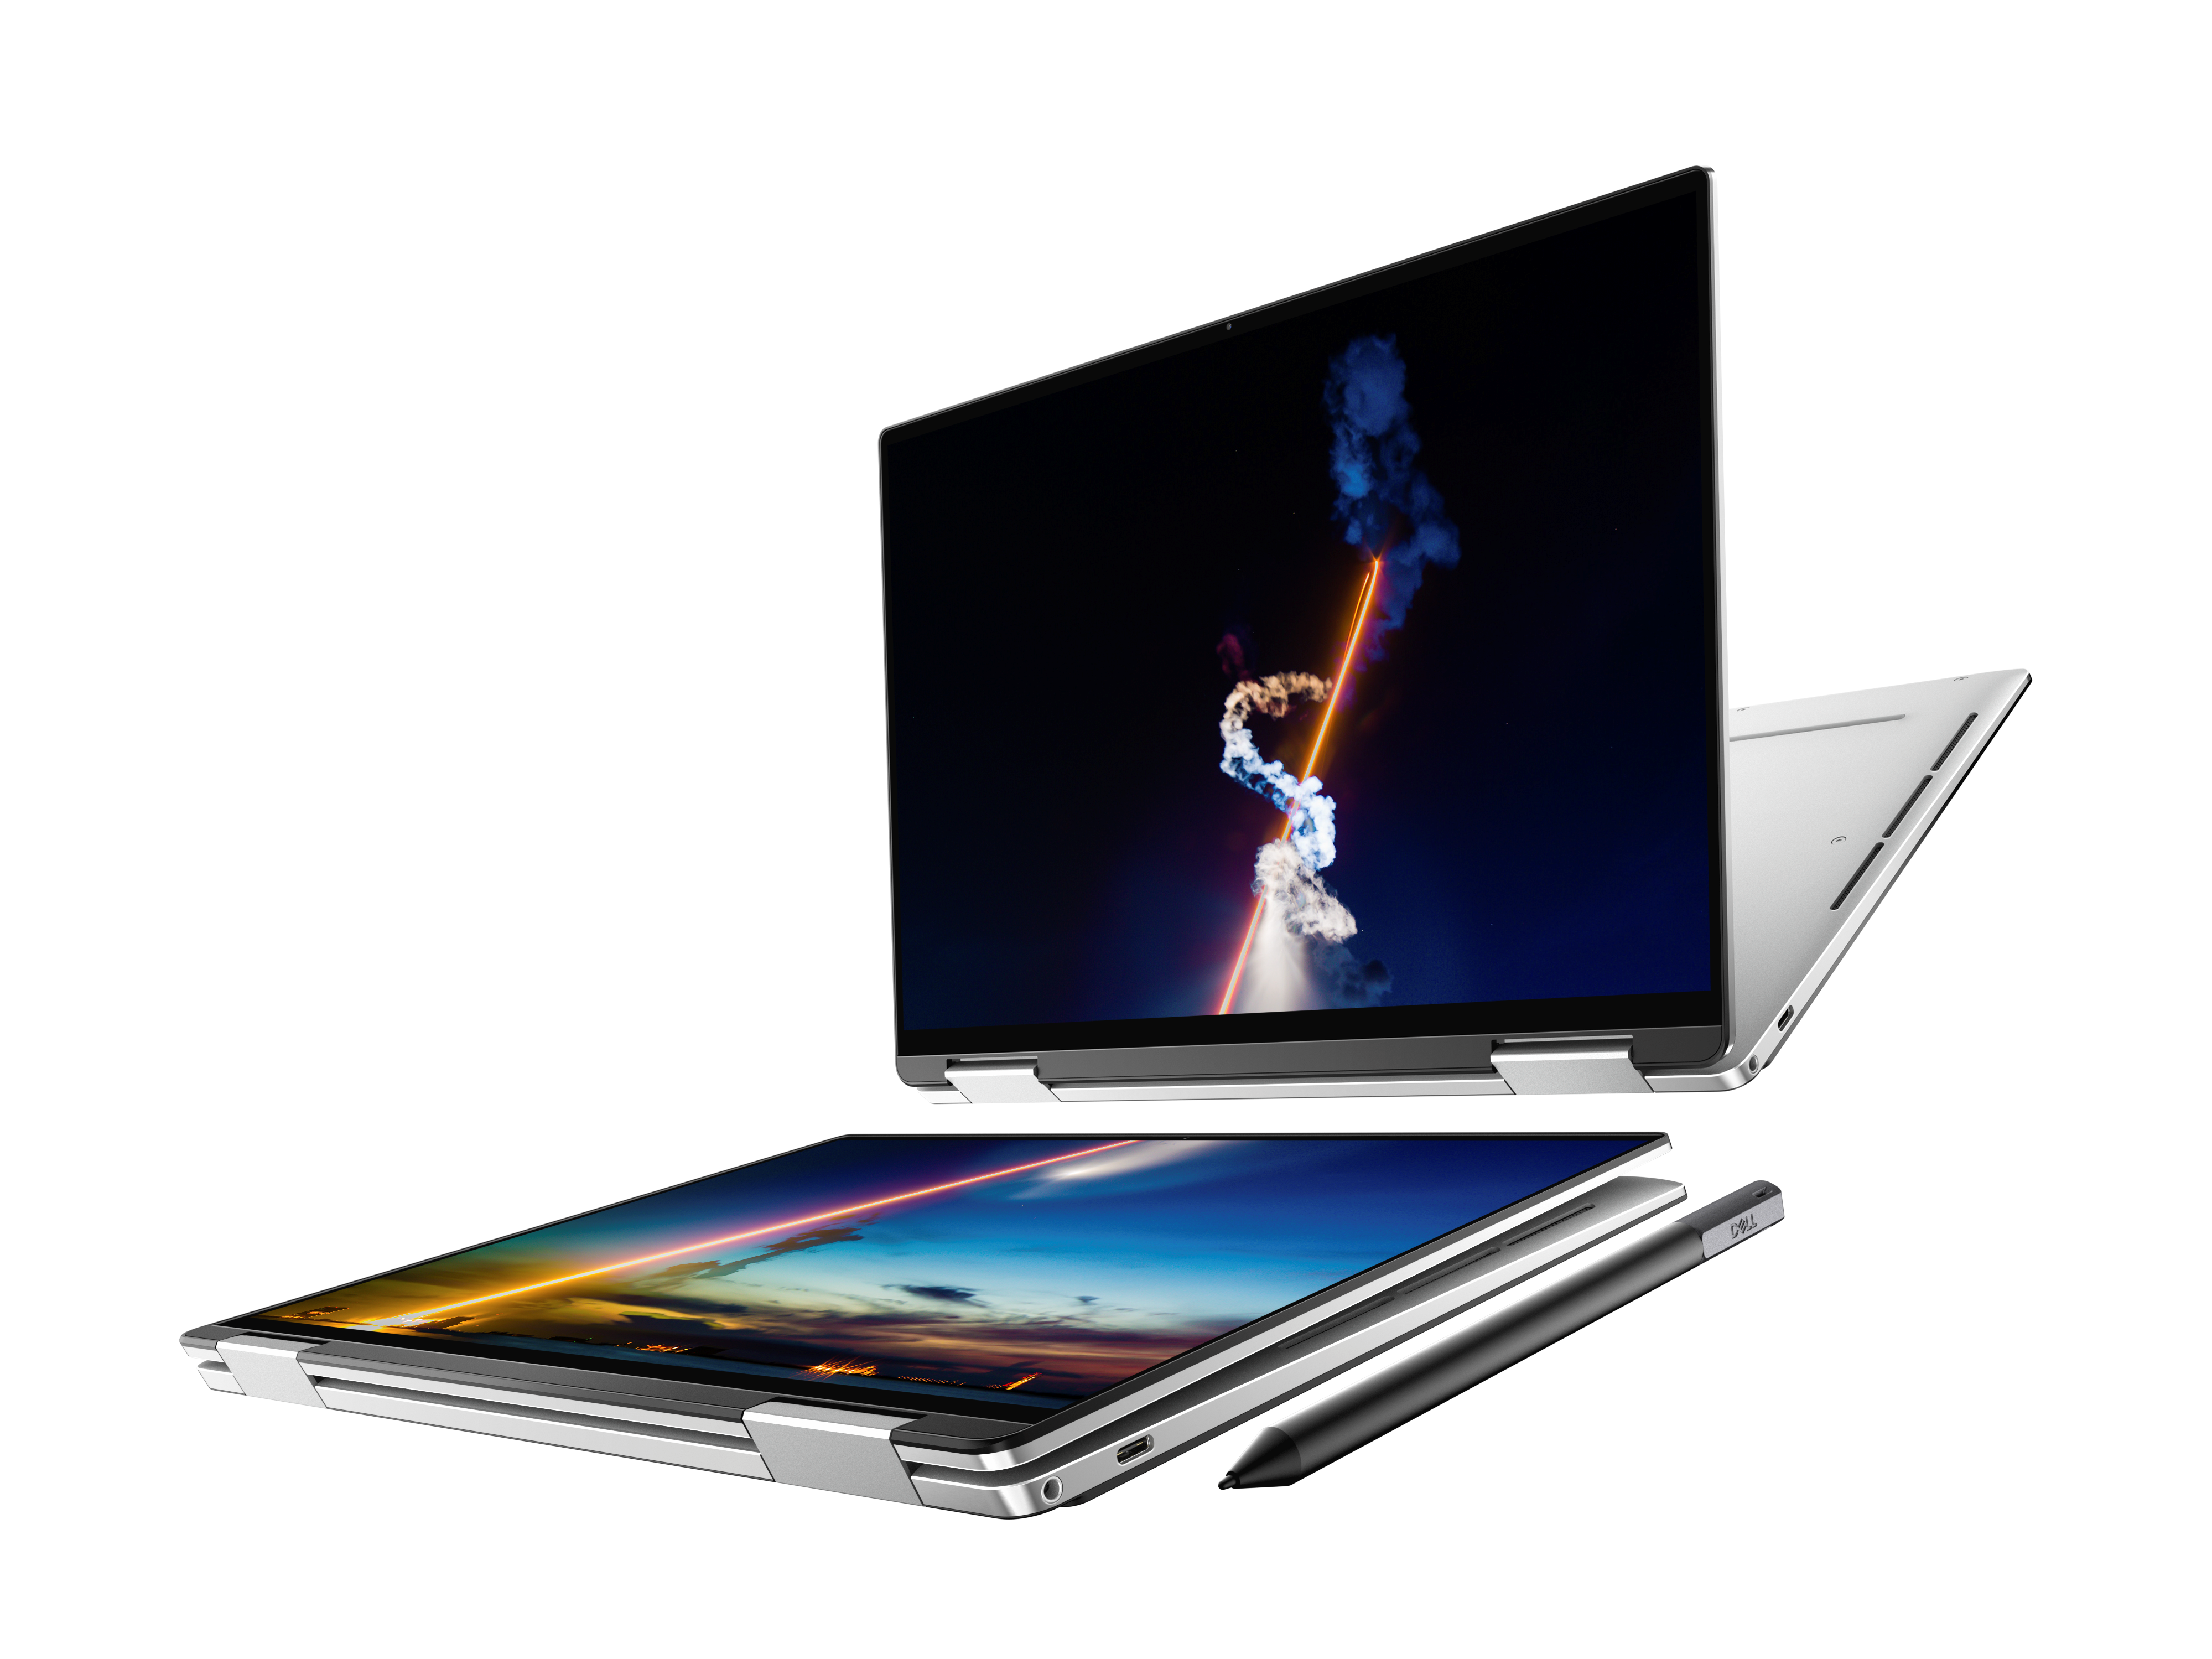 XPS 13 2-in-1 image